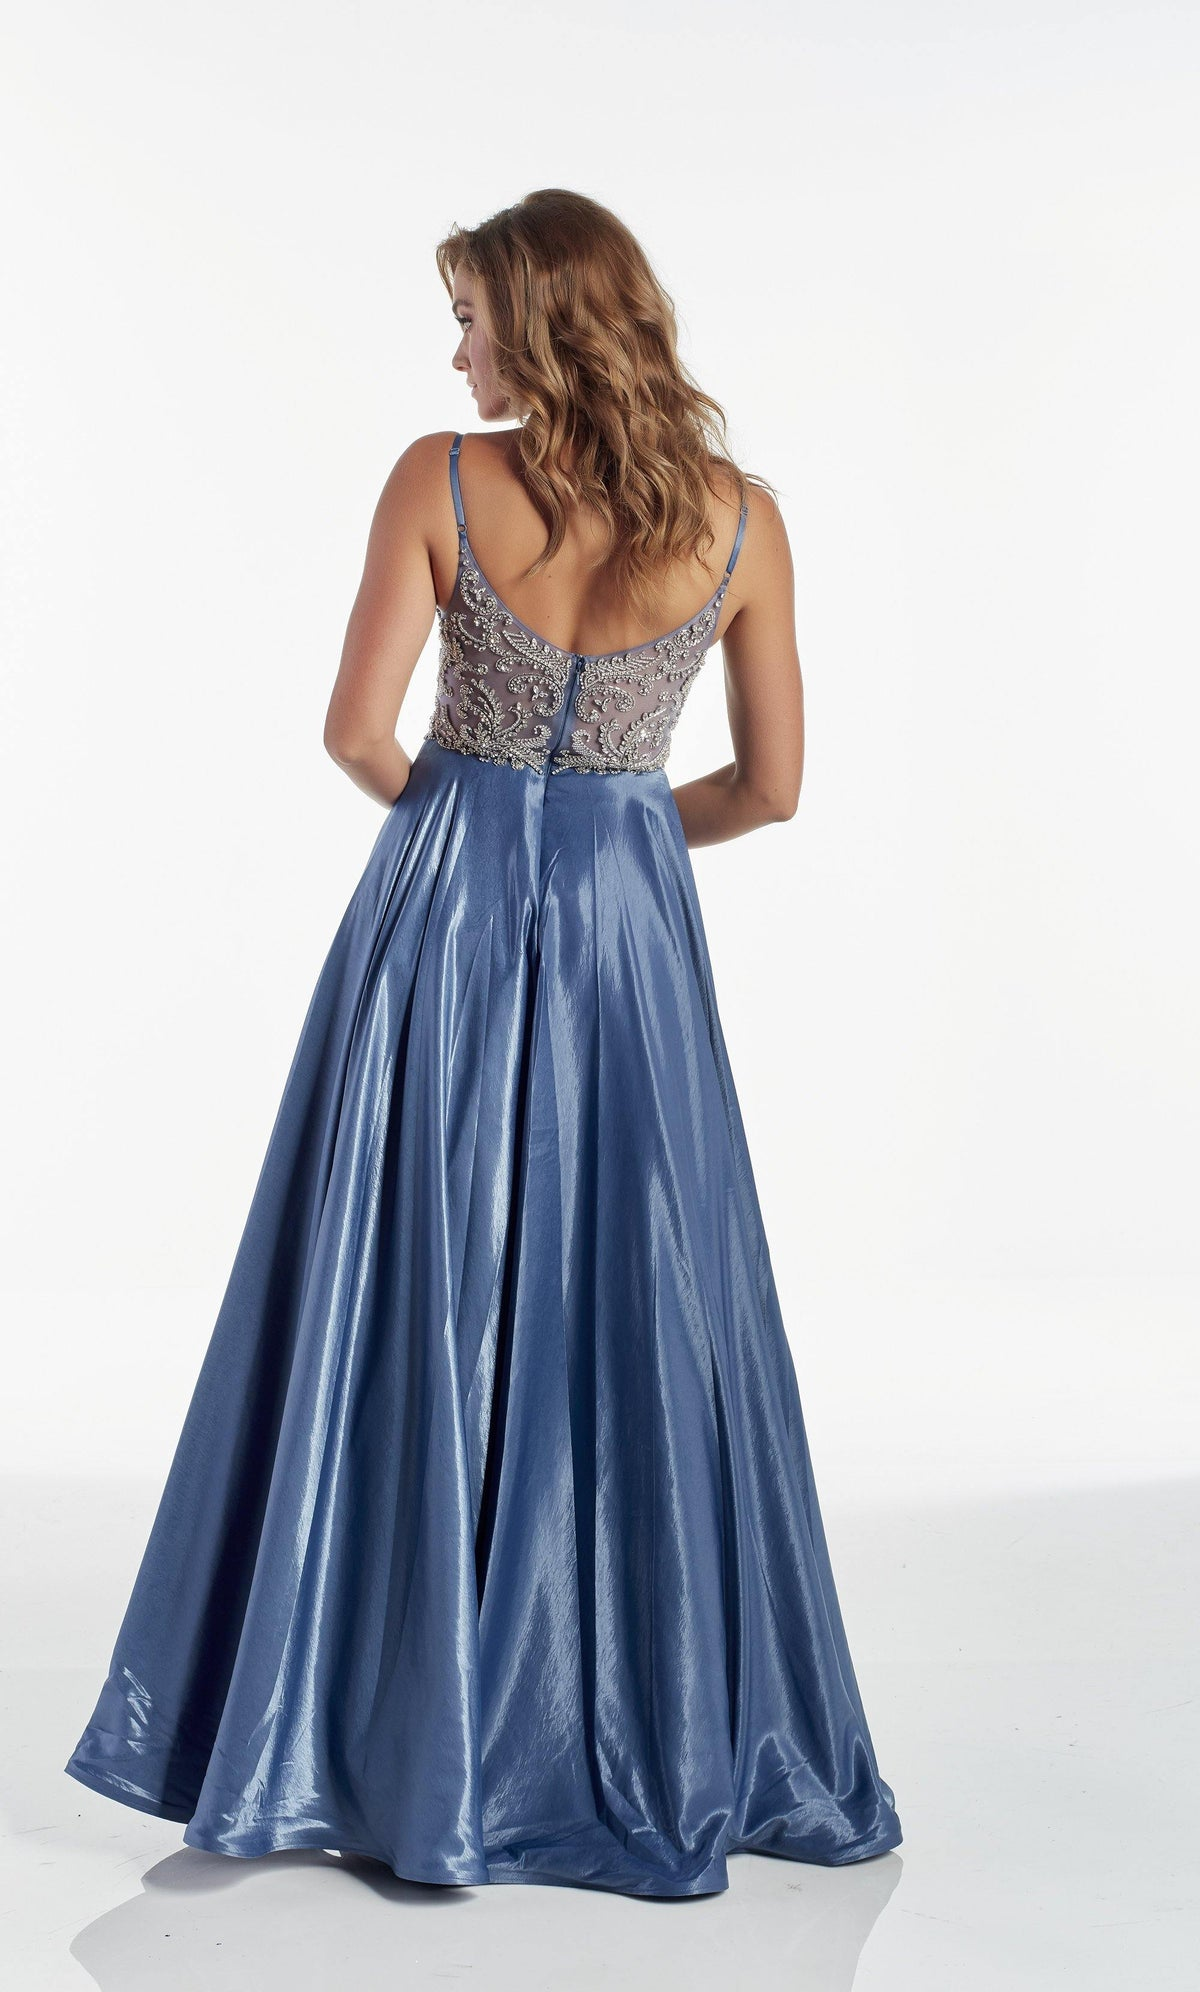 Dark French Blue flowy prom dress with an enclosed back and embellished bodice